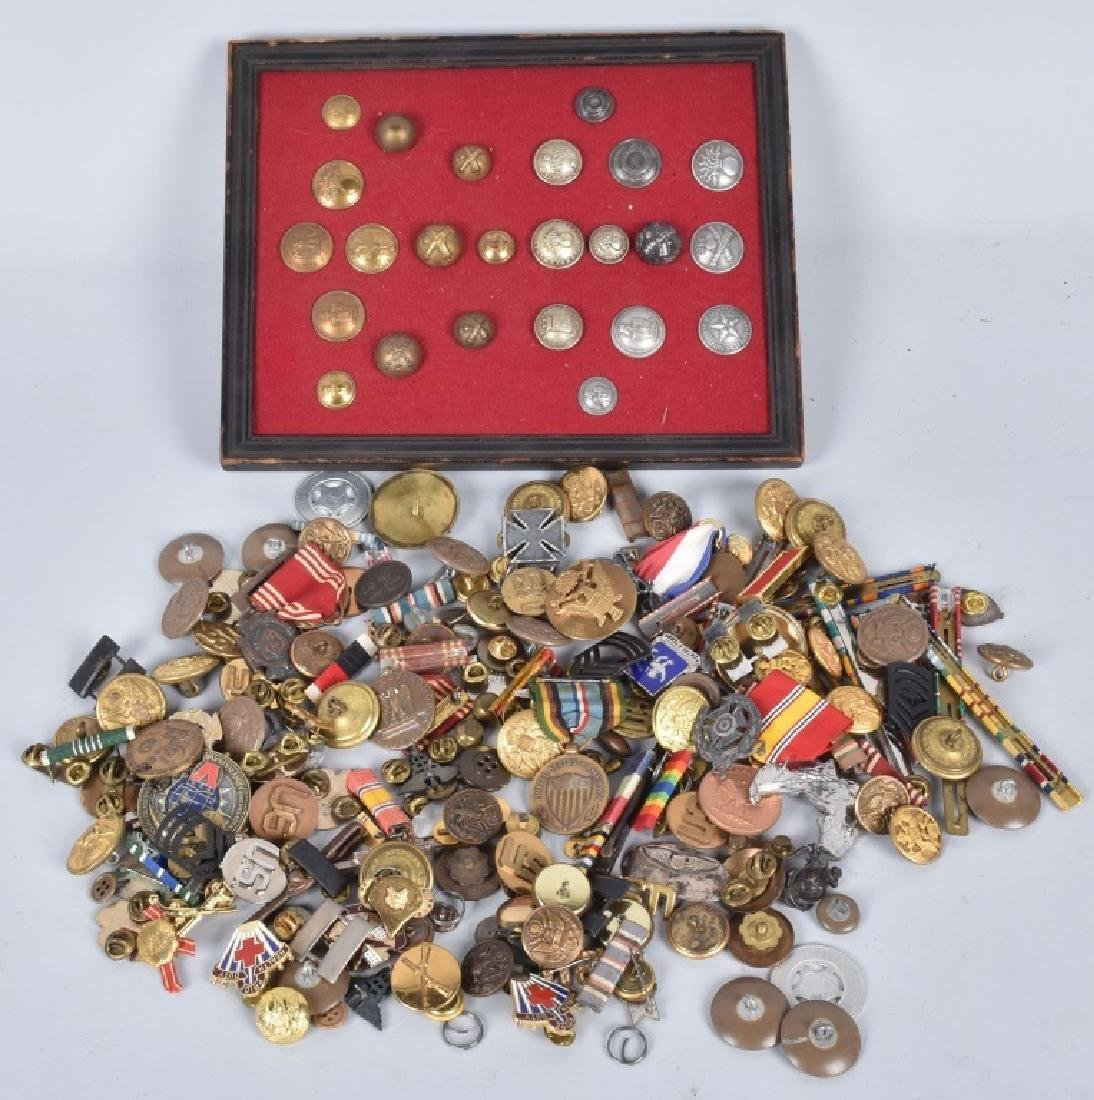 U.S. & FOREIGN MILITARY PINS, BUTTONS AWARDS